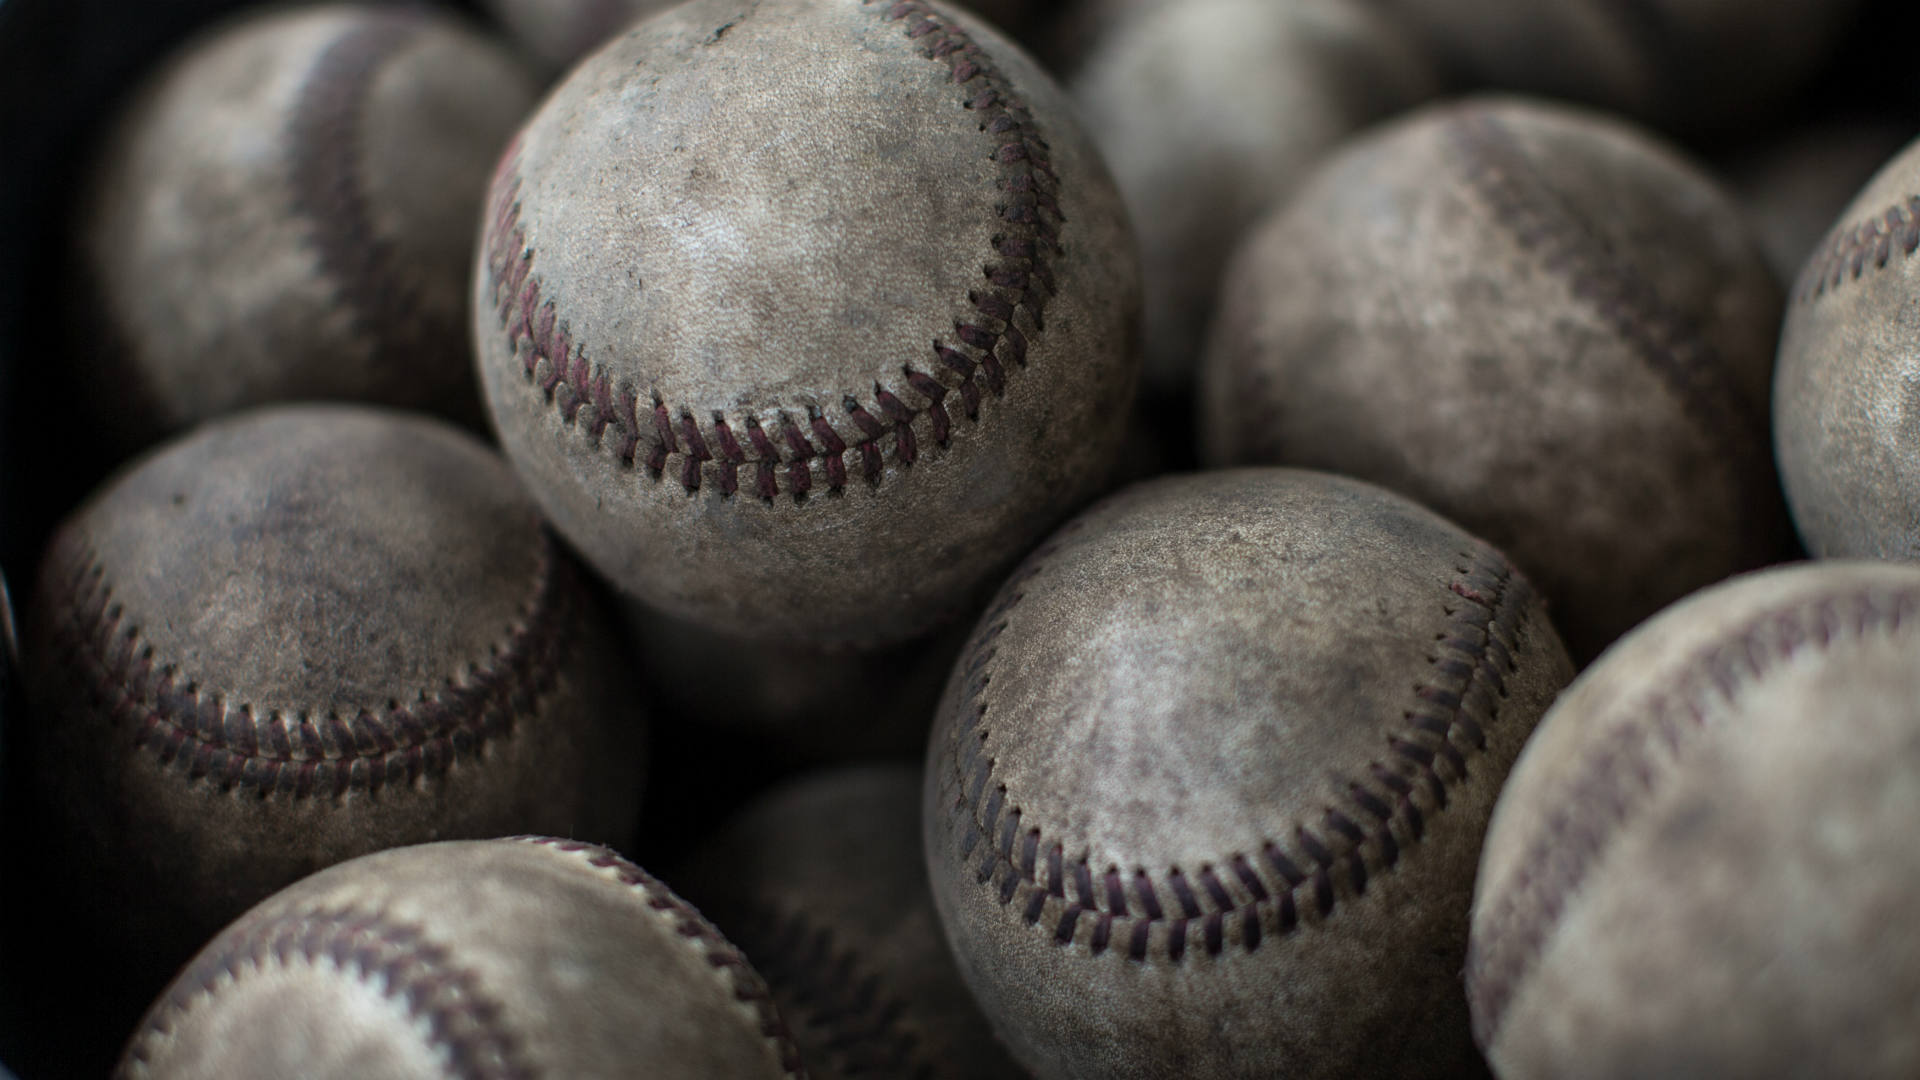 Black Iowa baseball player told 'you should have been George Floyd' during game